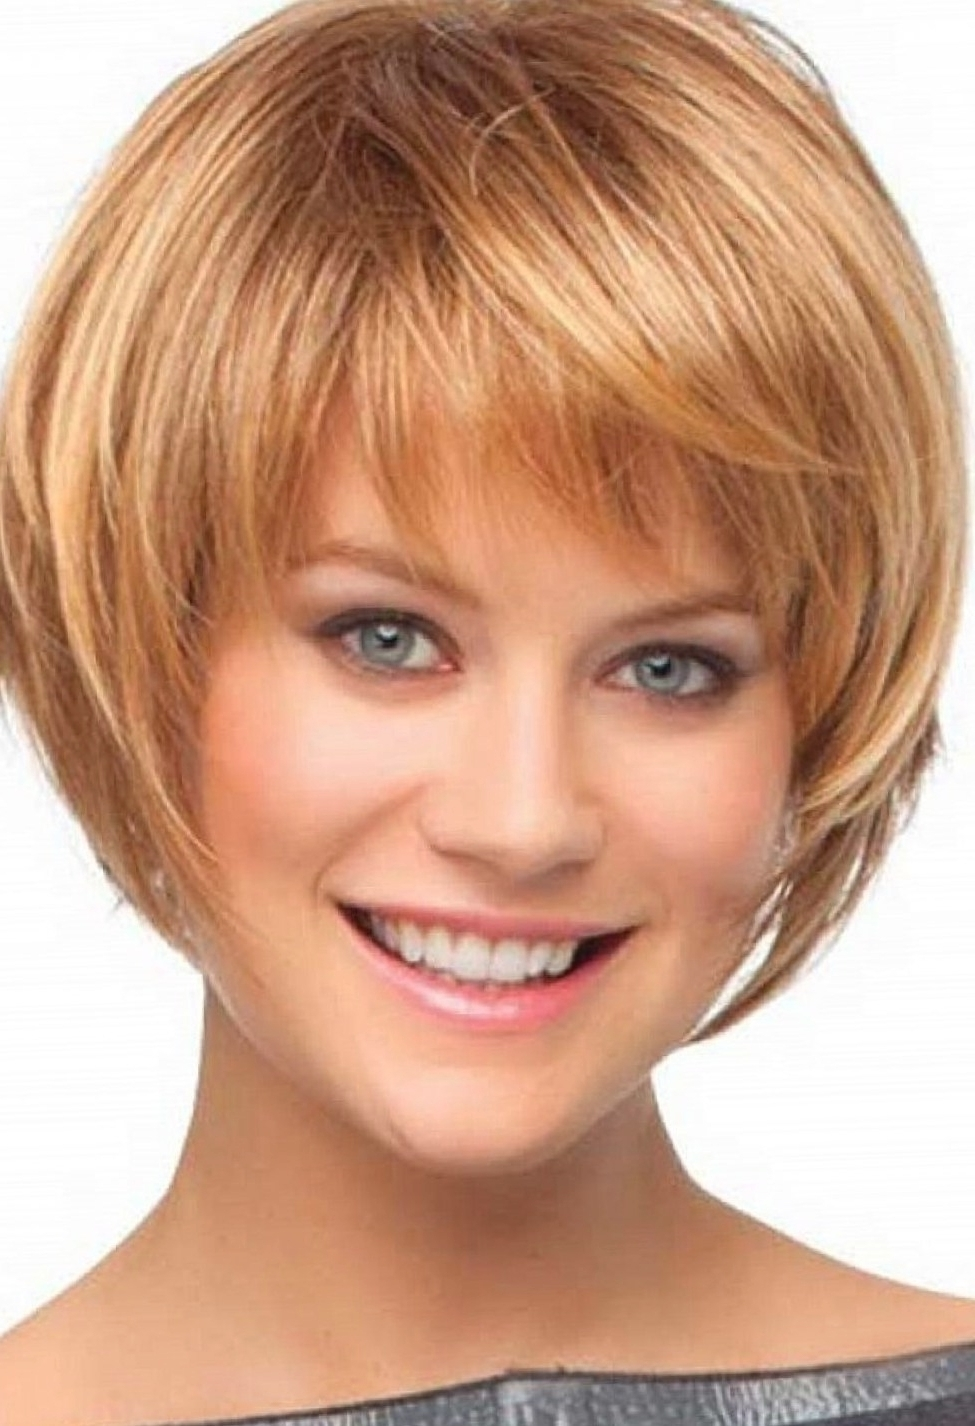 Short Layered Bob Hairstyles (View 8 of 15)